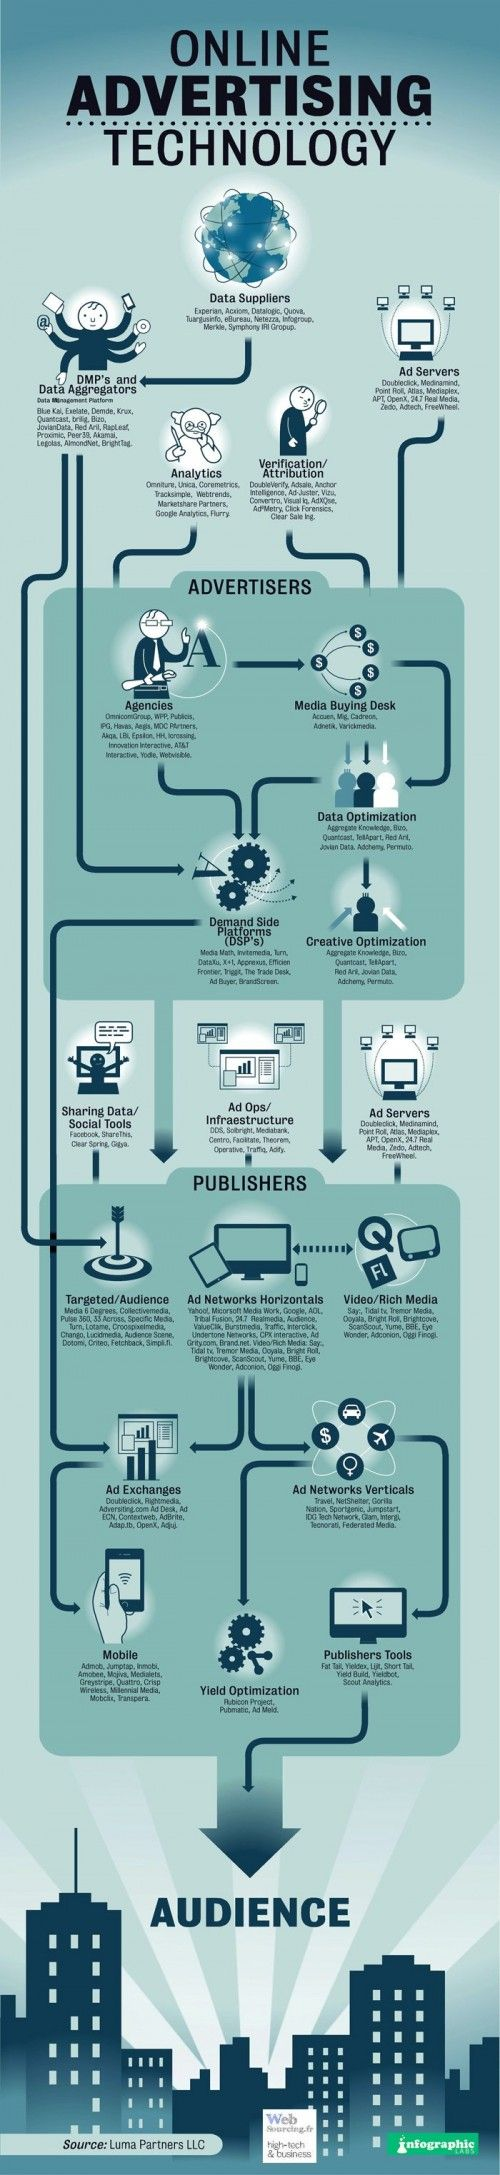 143 Best Technology Images On Pinterest Appliances Future And Gadgets Wiring Diagram For Sdtech Light Bars Online Advertising